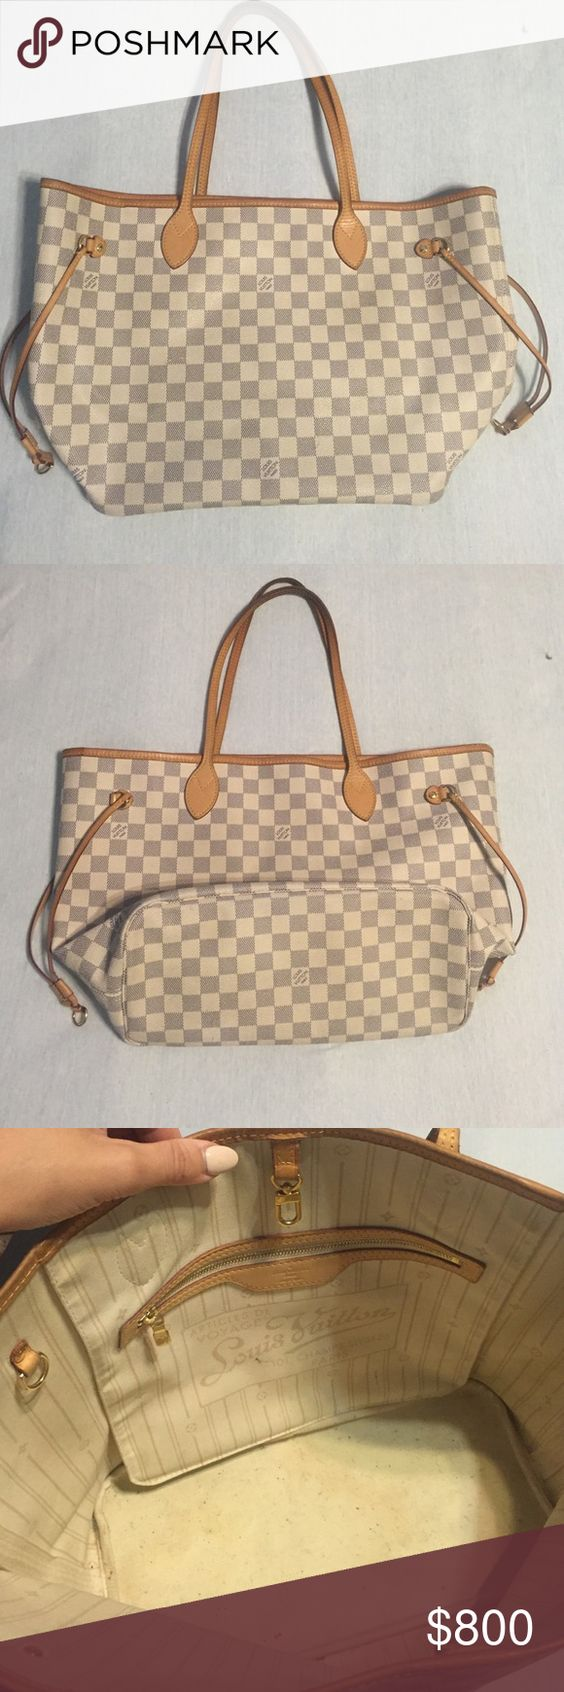 Damier Azur neverfull mm Used but in excellent condition Louis Vuitton Bags Shoulder Bags